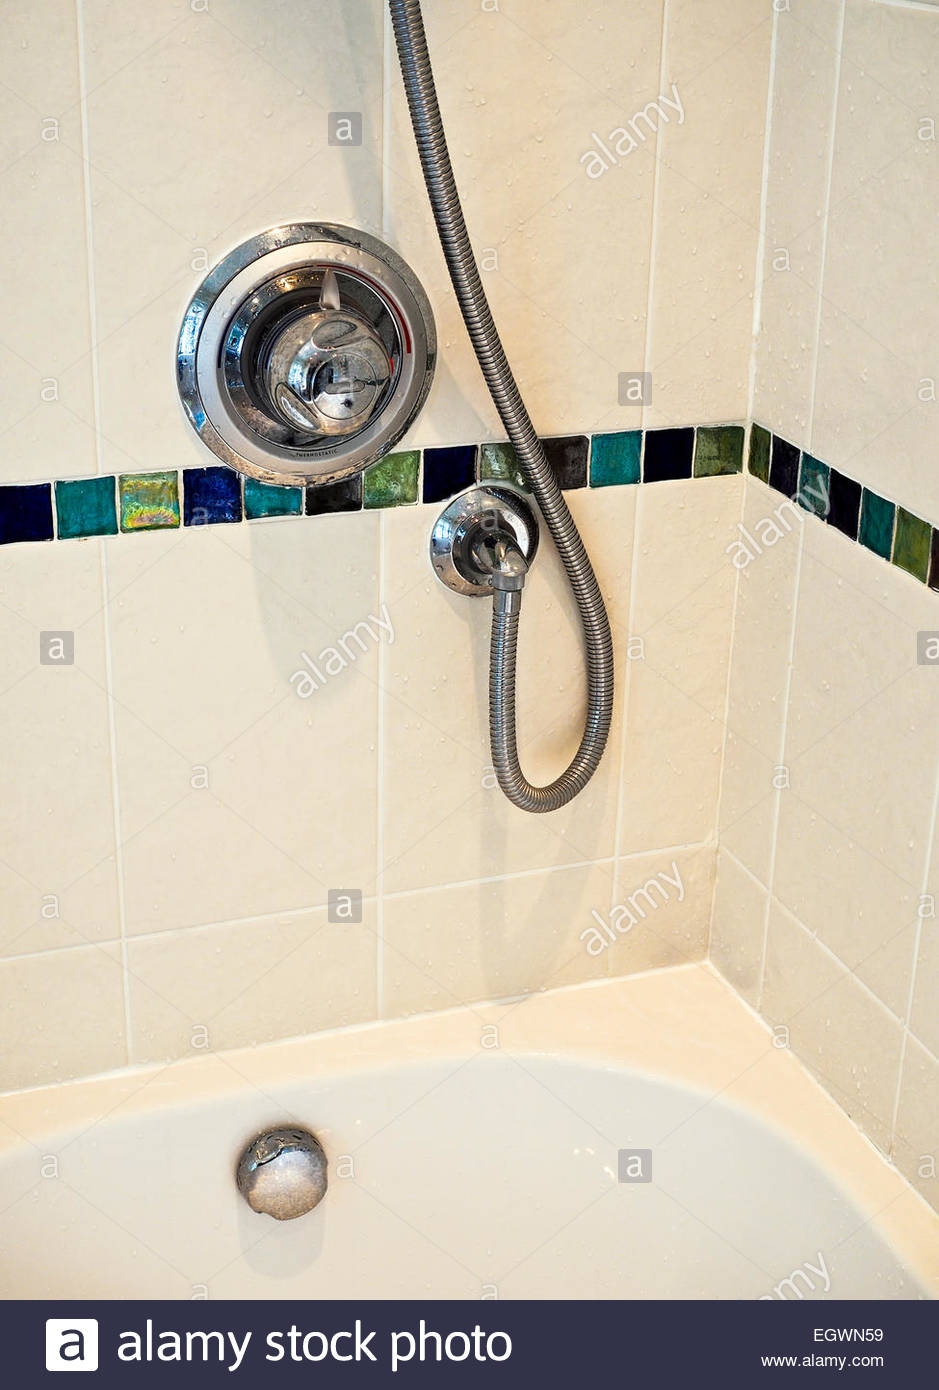 Shower fittings and water temperature control - Stock Image